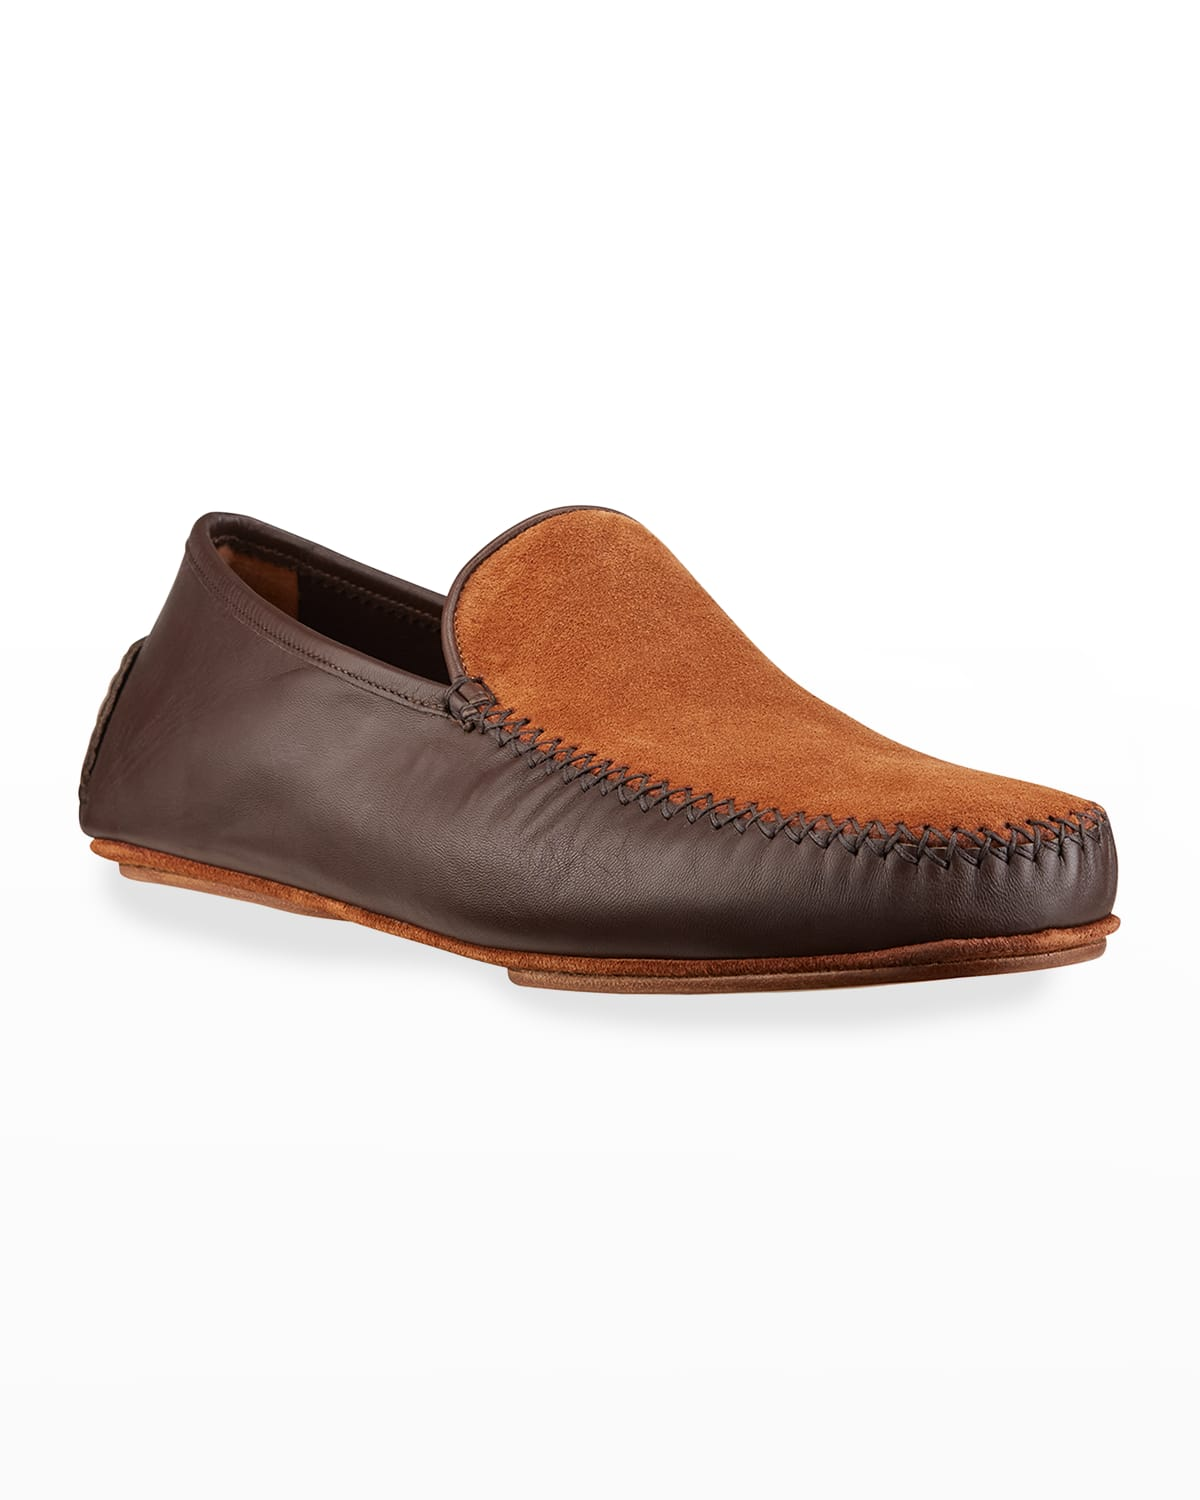 Men's Mayfair Two-Tone Suede and Leather Slippers